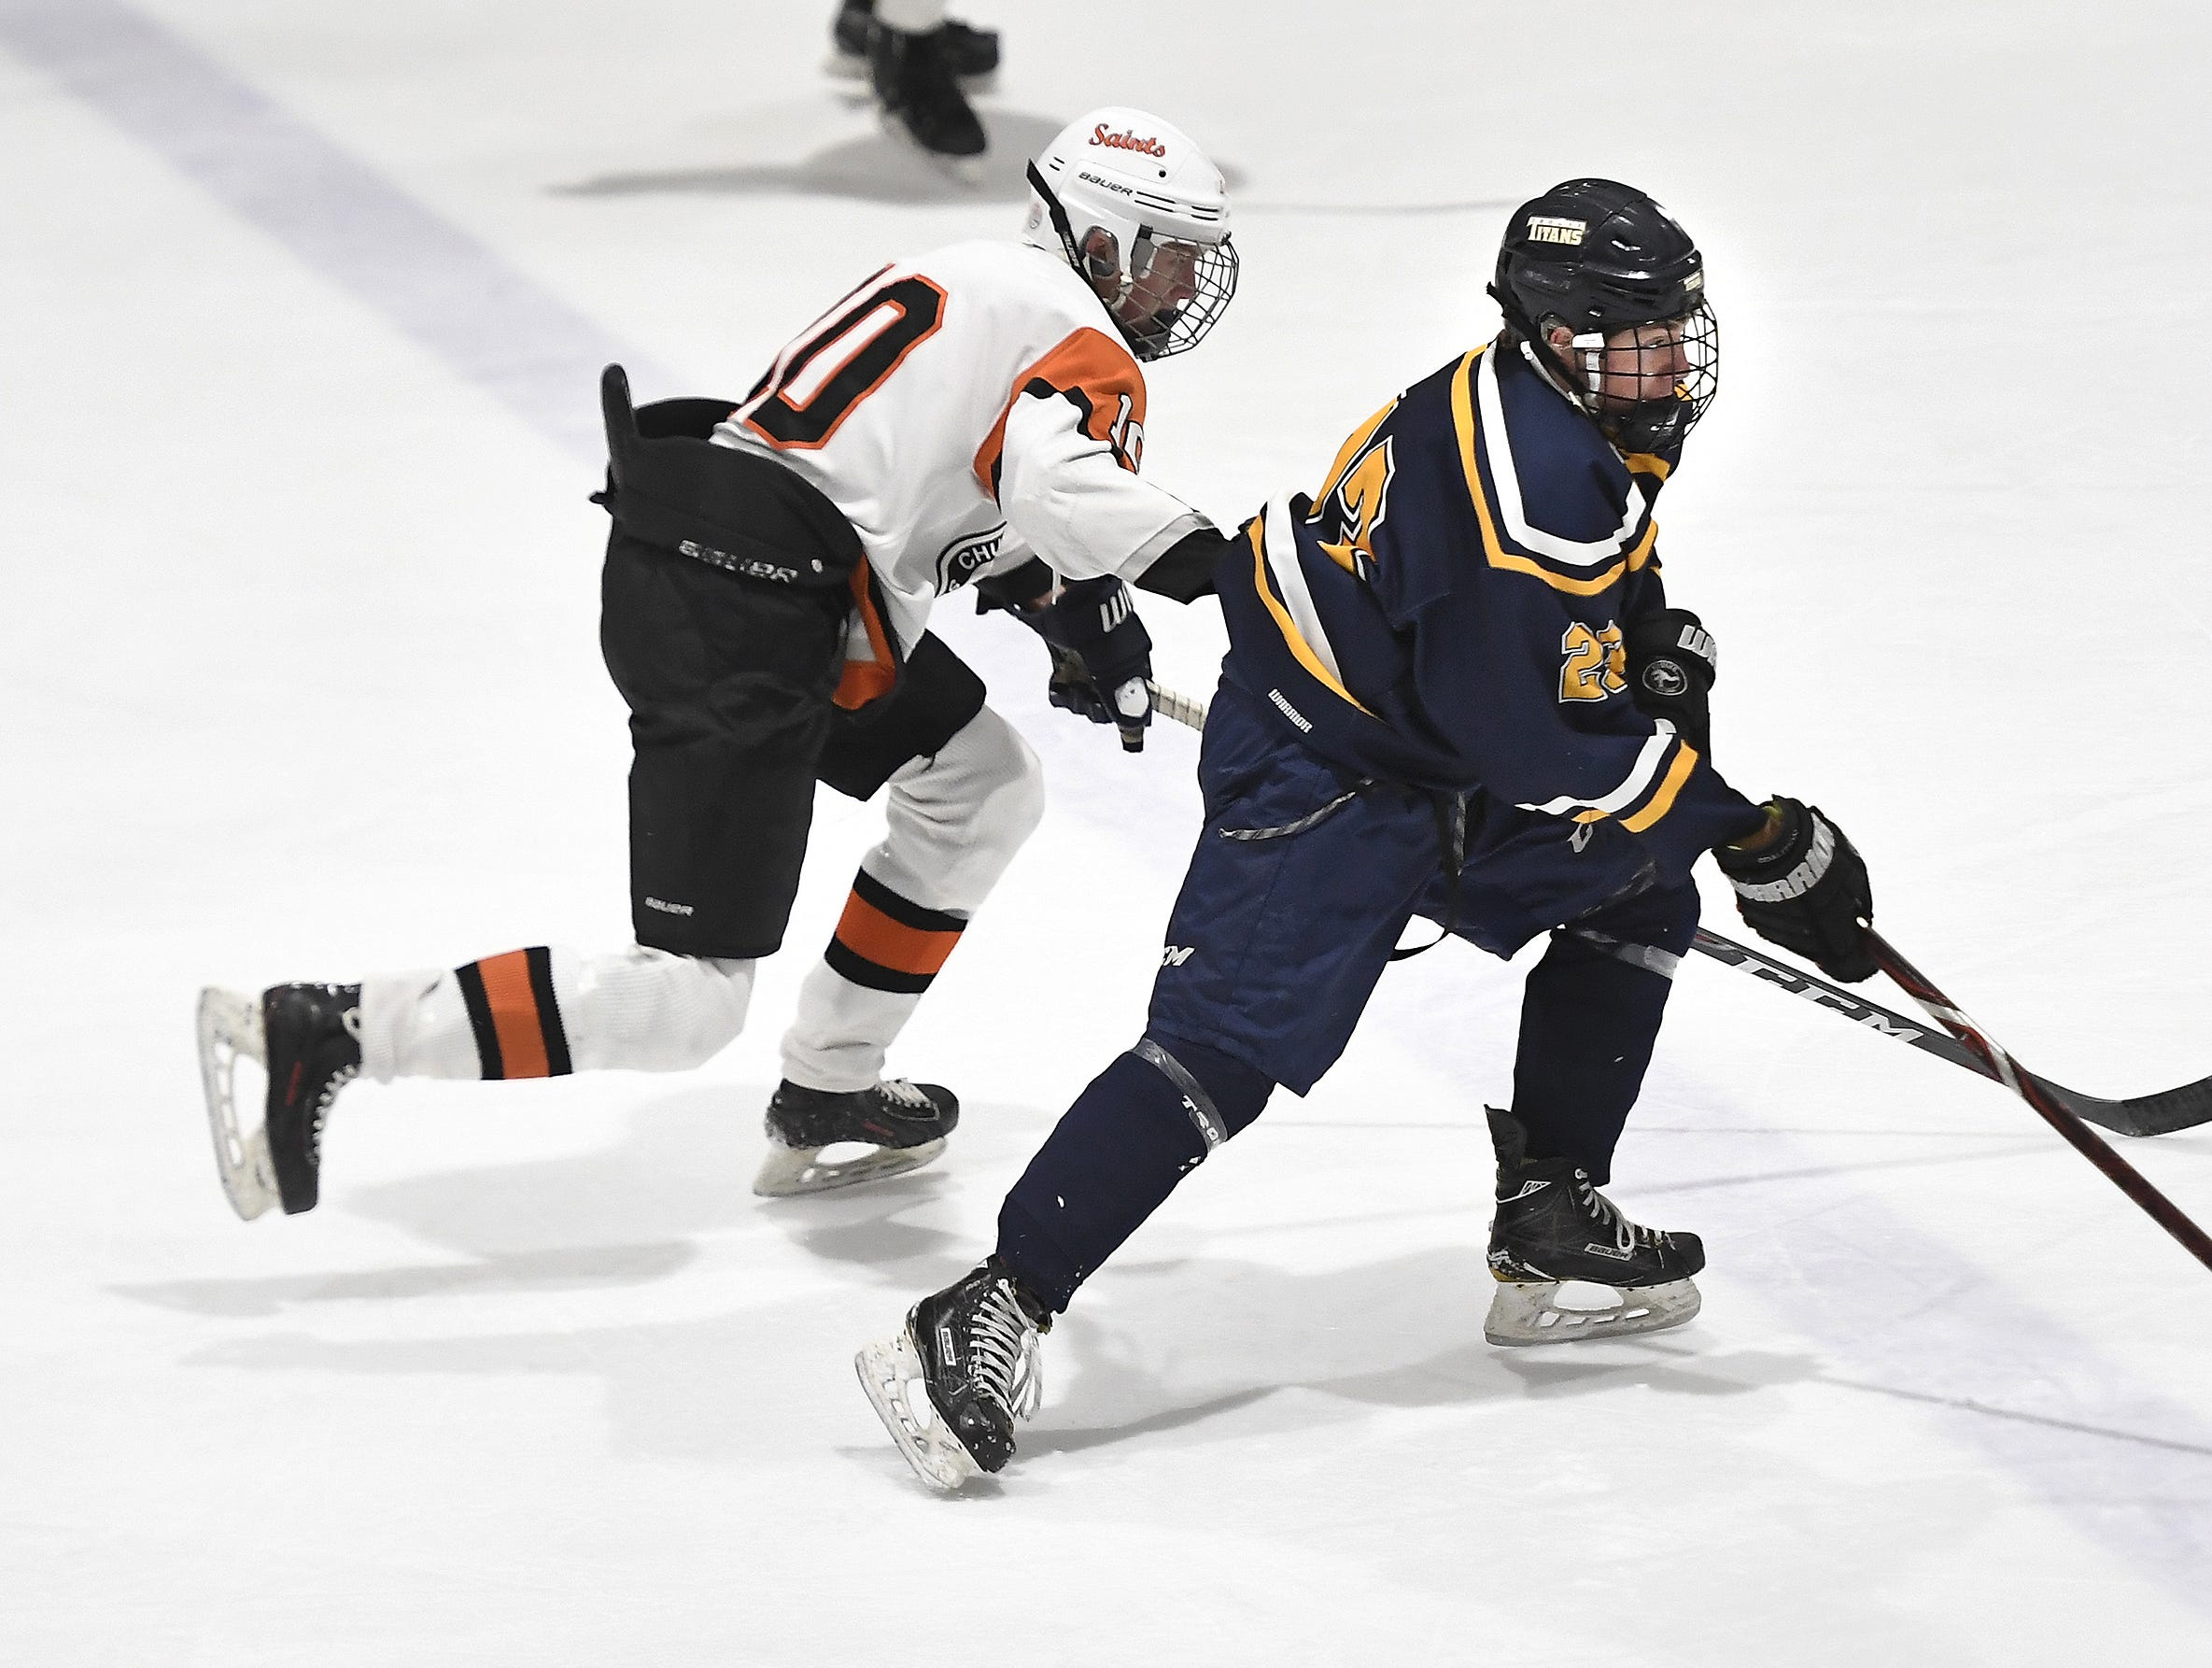 Webster Thomas' Reed Currie, right, is defended by Churchville-Chili's Keegan Metcalfe during a regular season game played at the Scottsville Ice Arena, Tuesday, Jan. 22, 2019. Webster Thomas beat Chuchville-Chili 4-1.